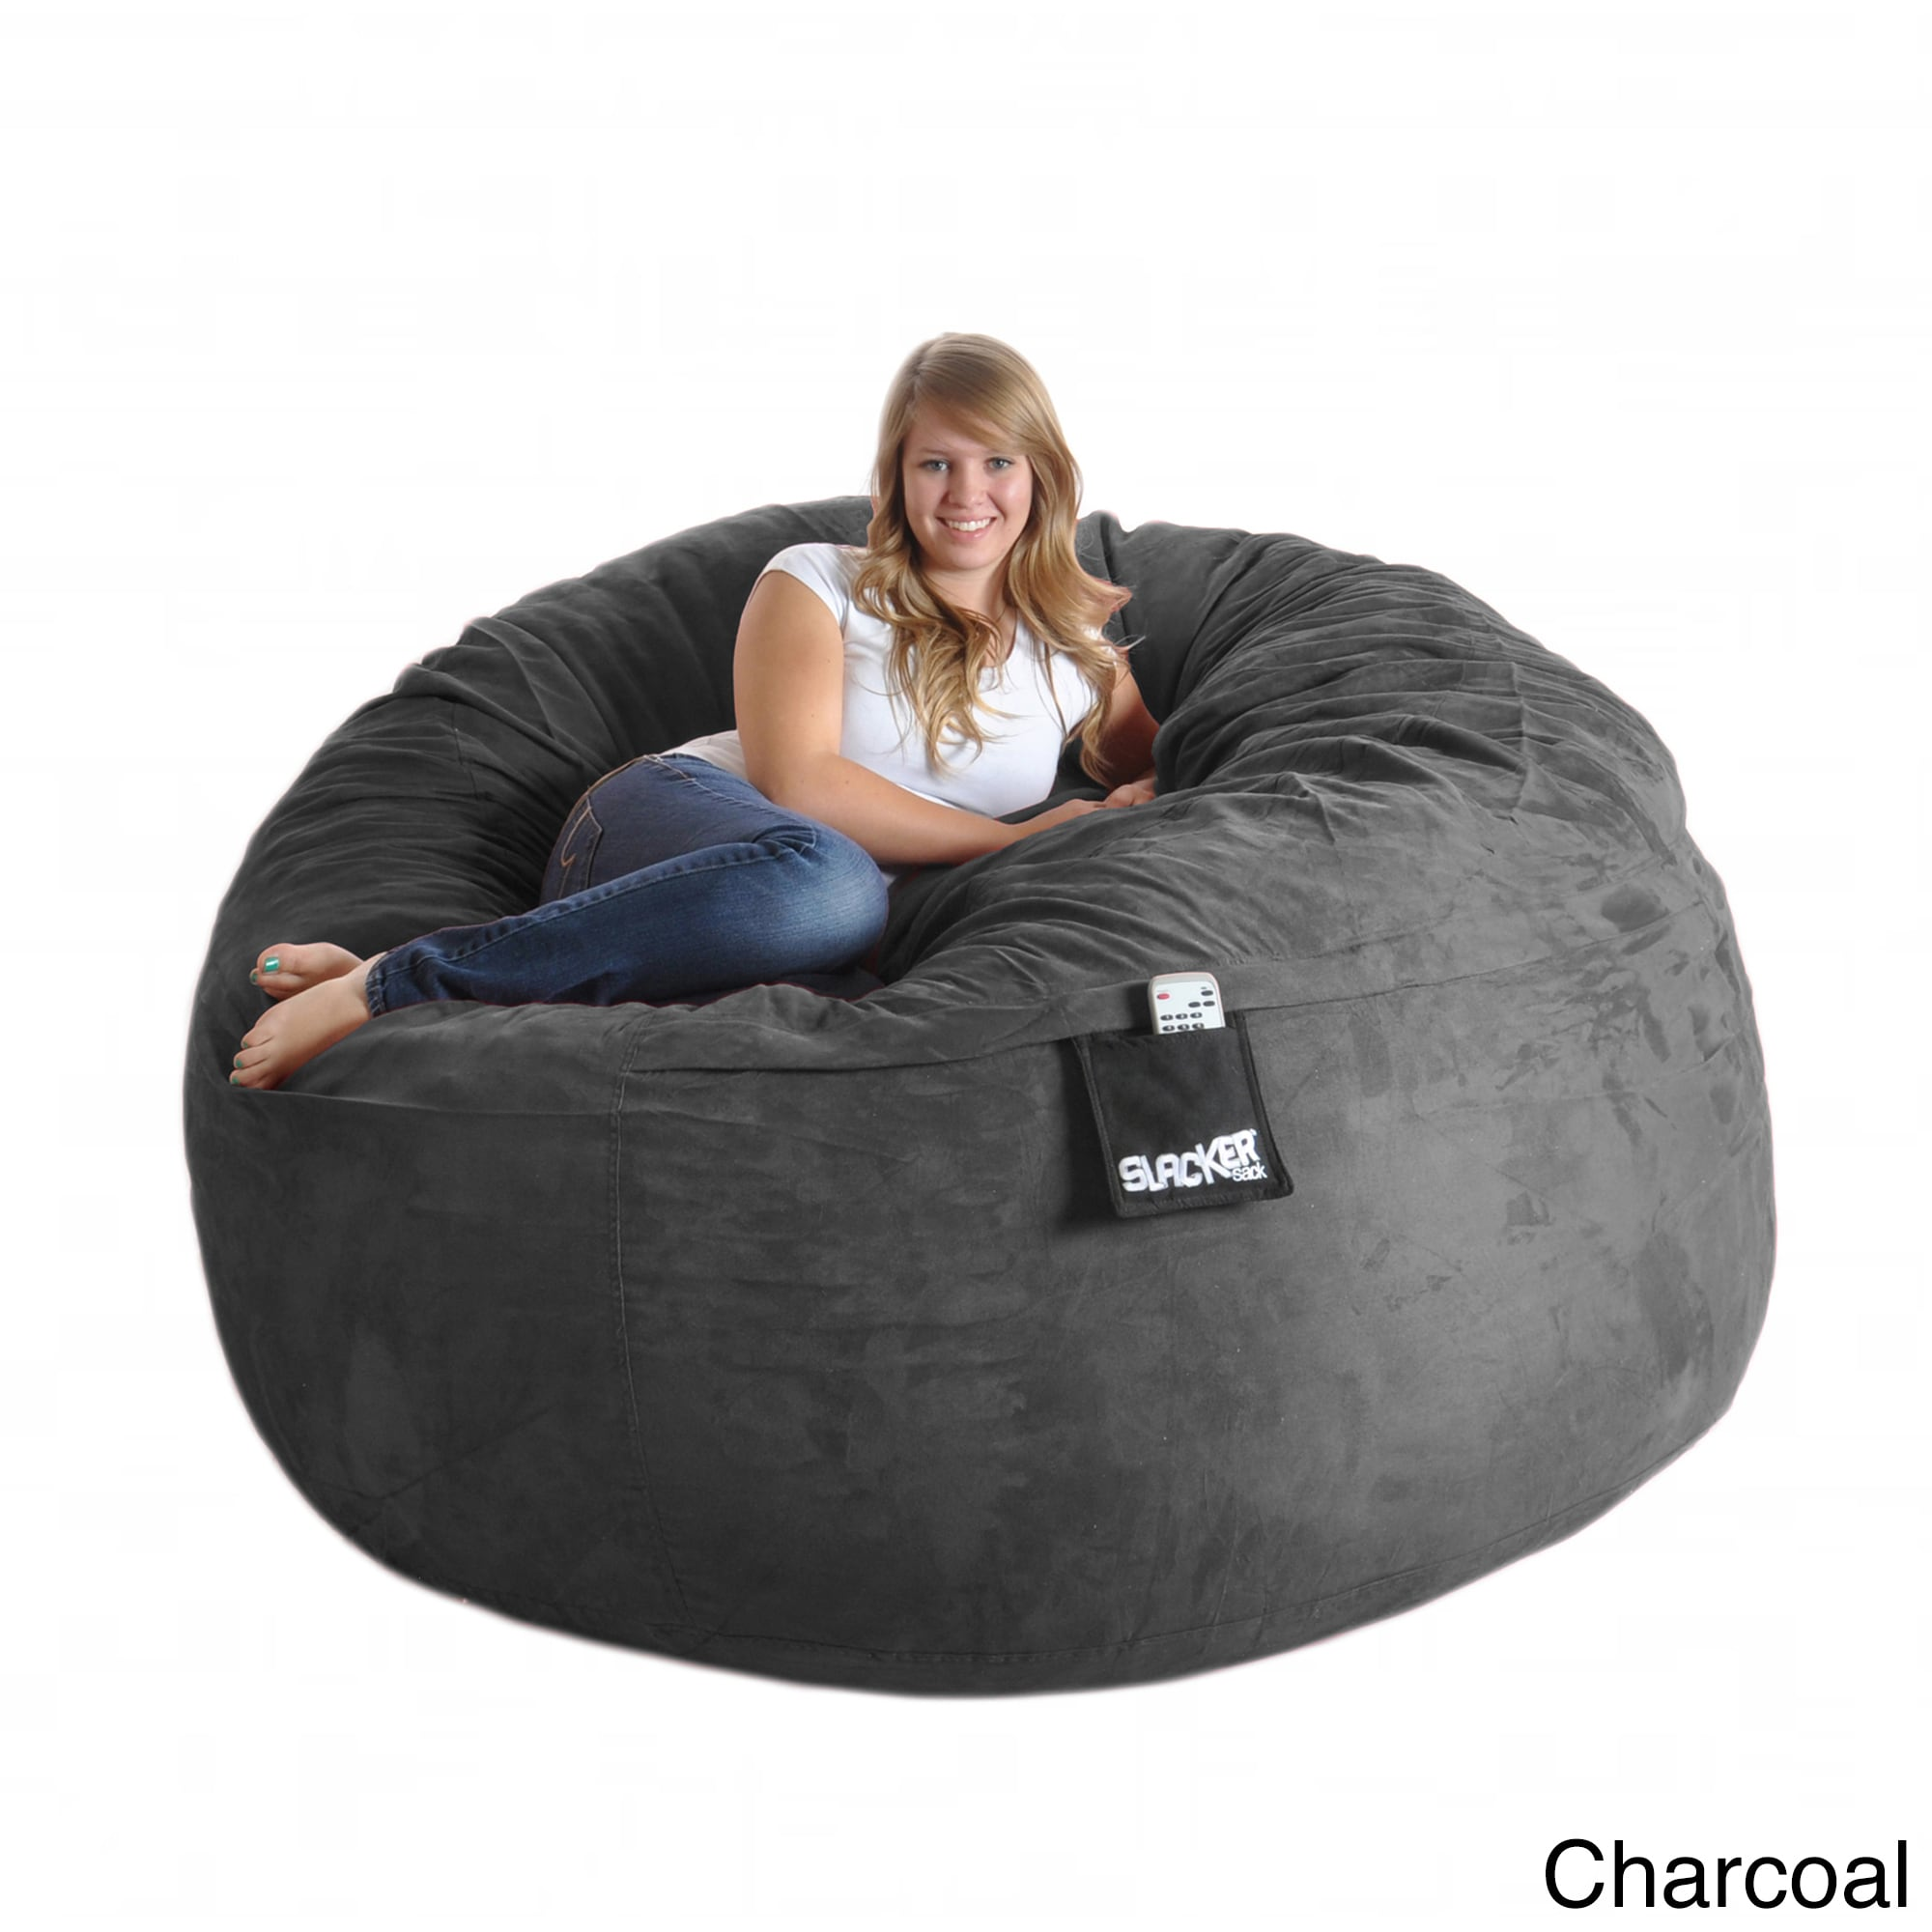 Super Slacker Sack Round 6 Foot Microsuede And Foam Bean Bag Onthecornerstone Fun Painted Chair Ideas Images Onthecornerstoneorg